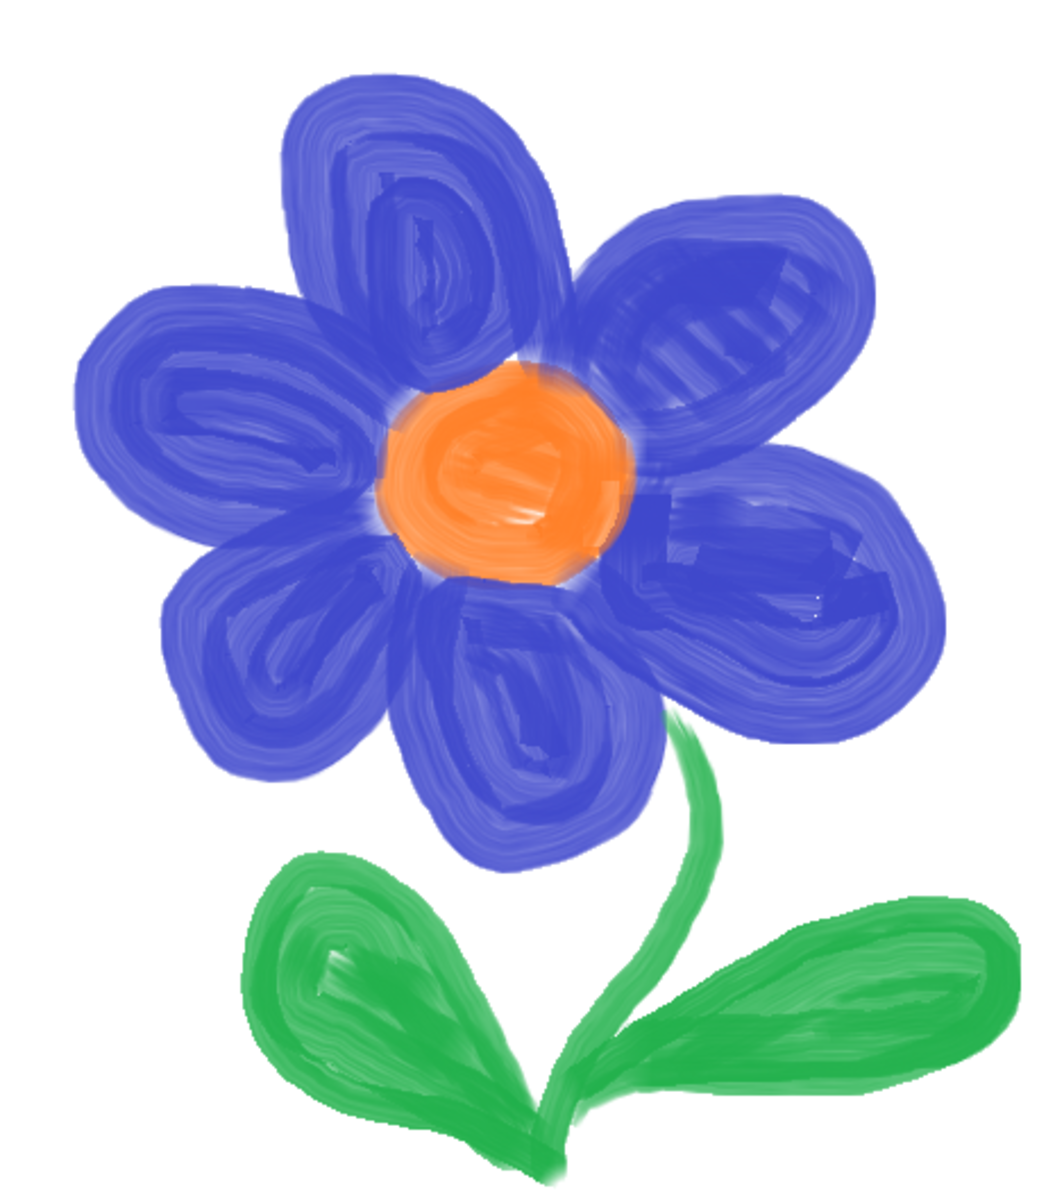 Daisy drown free hand using the oil brush tool in Microsoft Paint